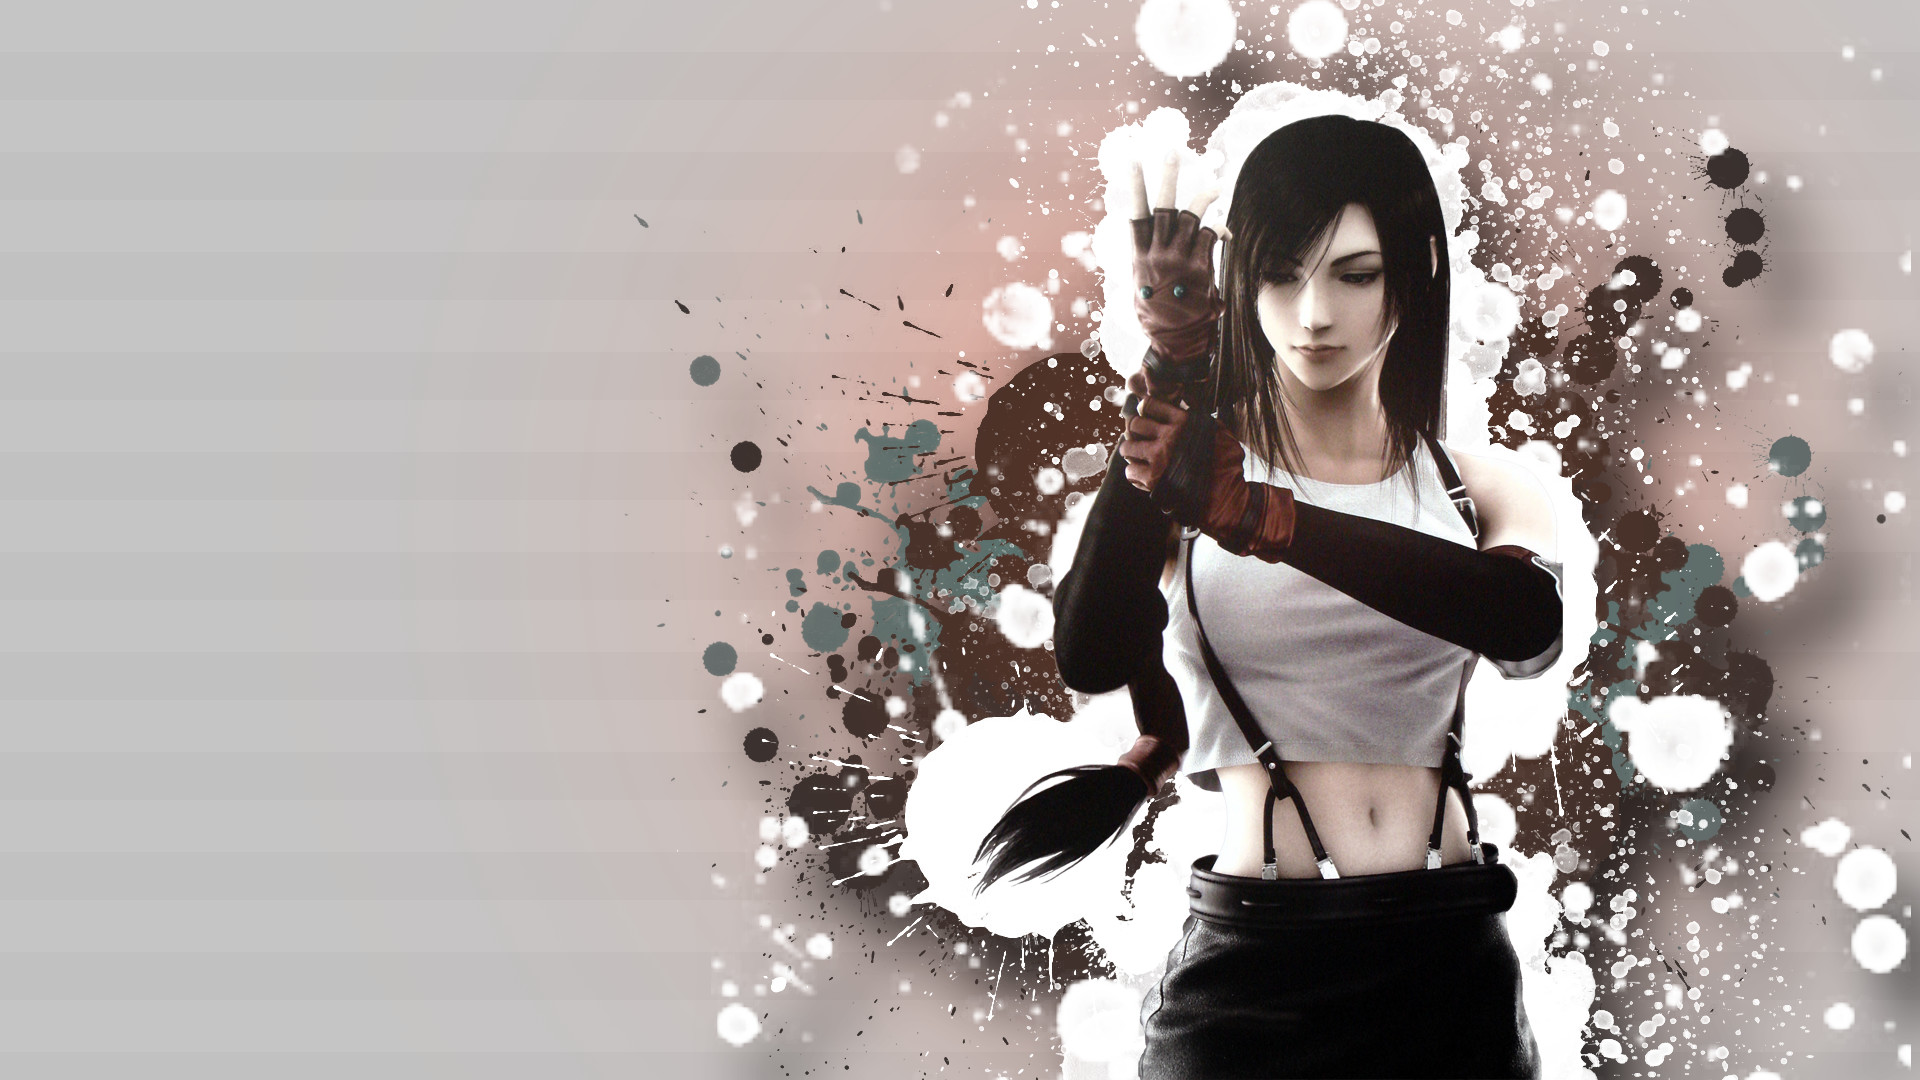 Final fantasy tifa wallpaper hd